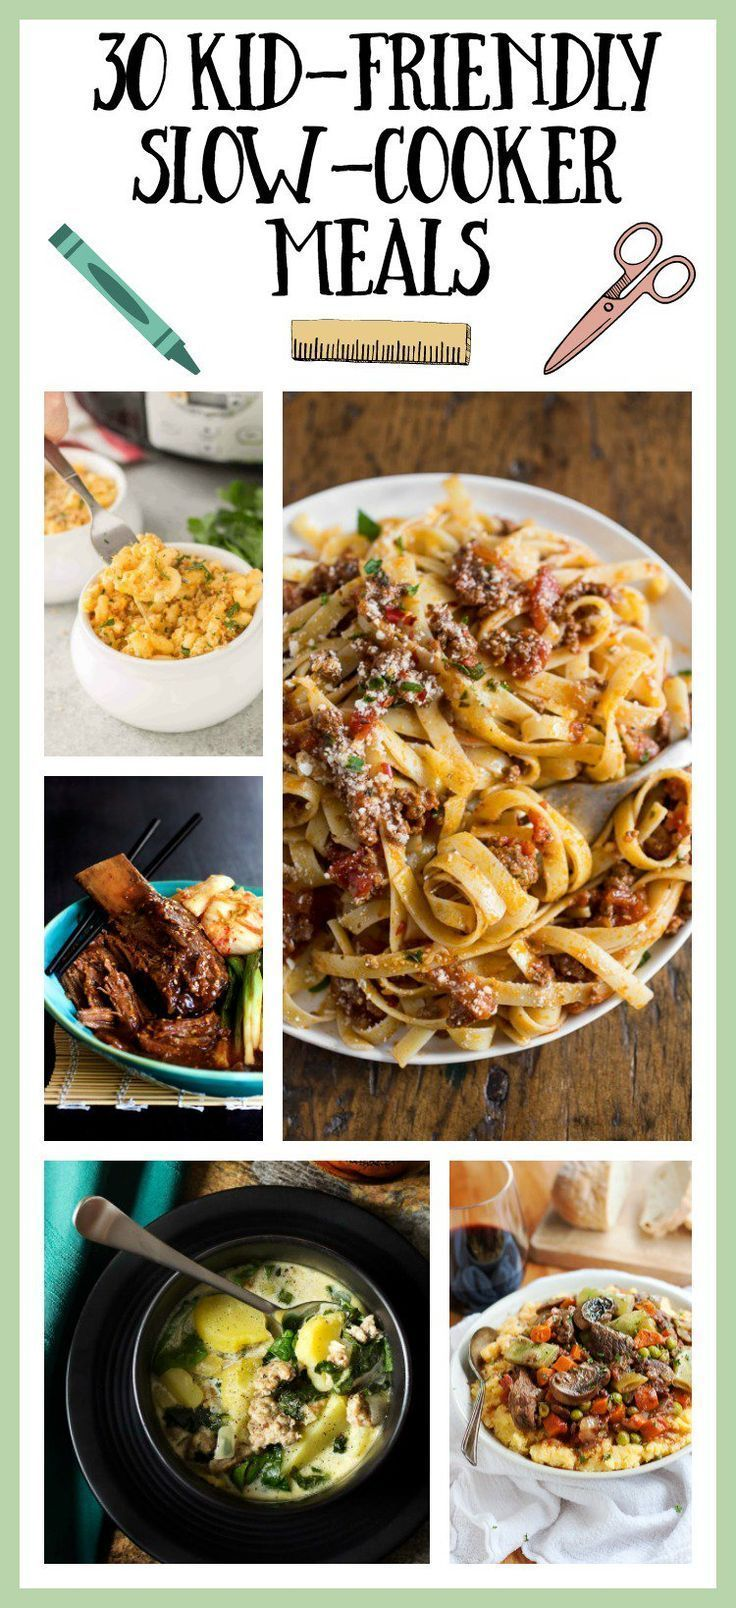 30 Kid Friendly Slow Cooker Meals Easy Dinner Recipes Crockpot Dinner Recipes Crockpot Easy Slow Cooker Recipes